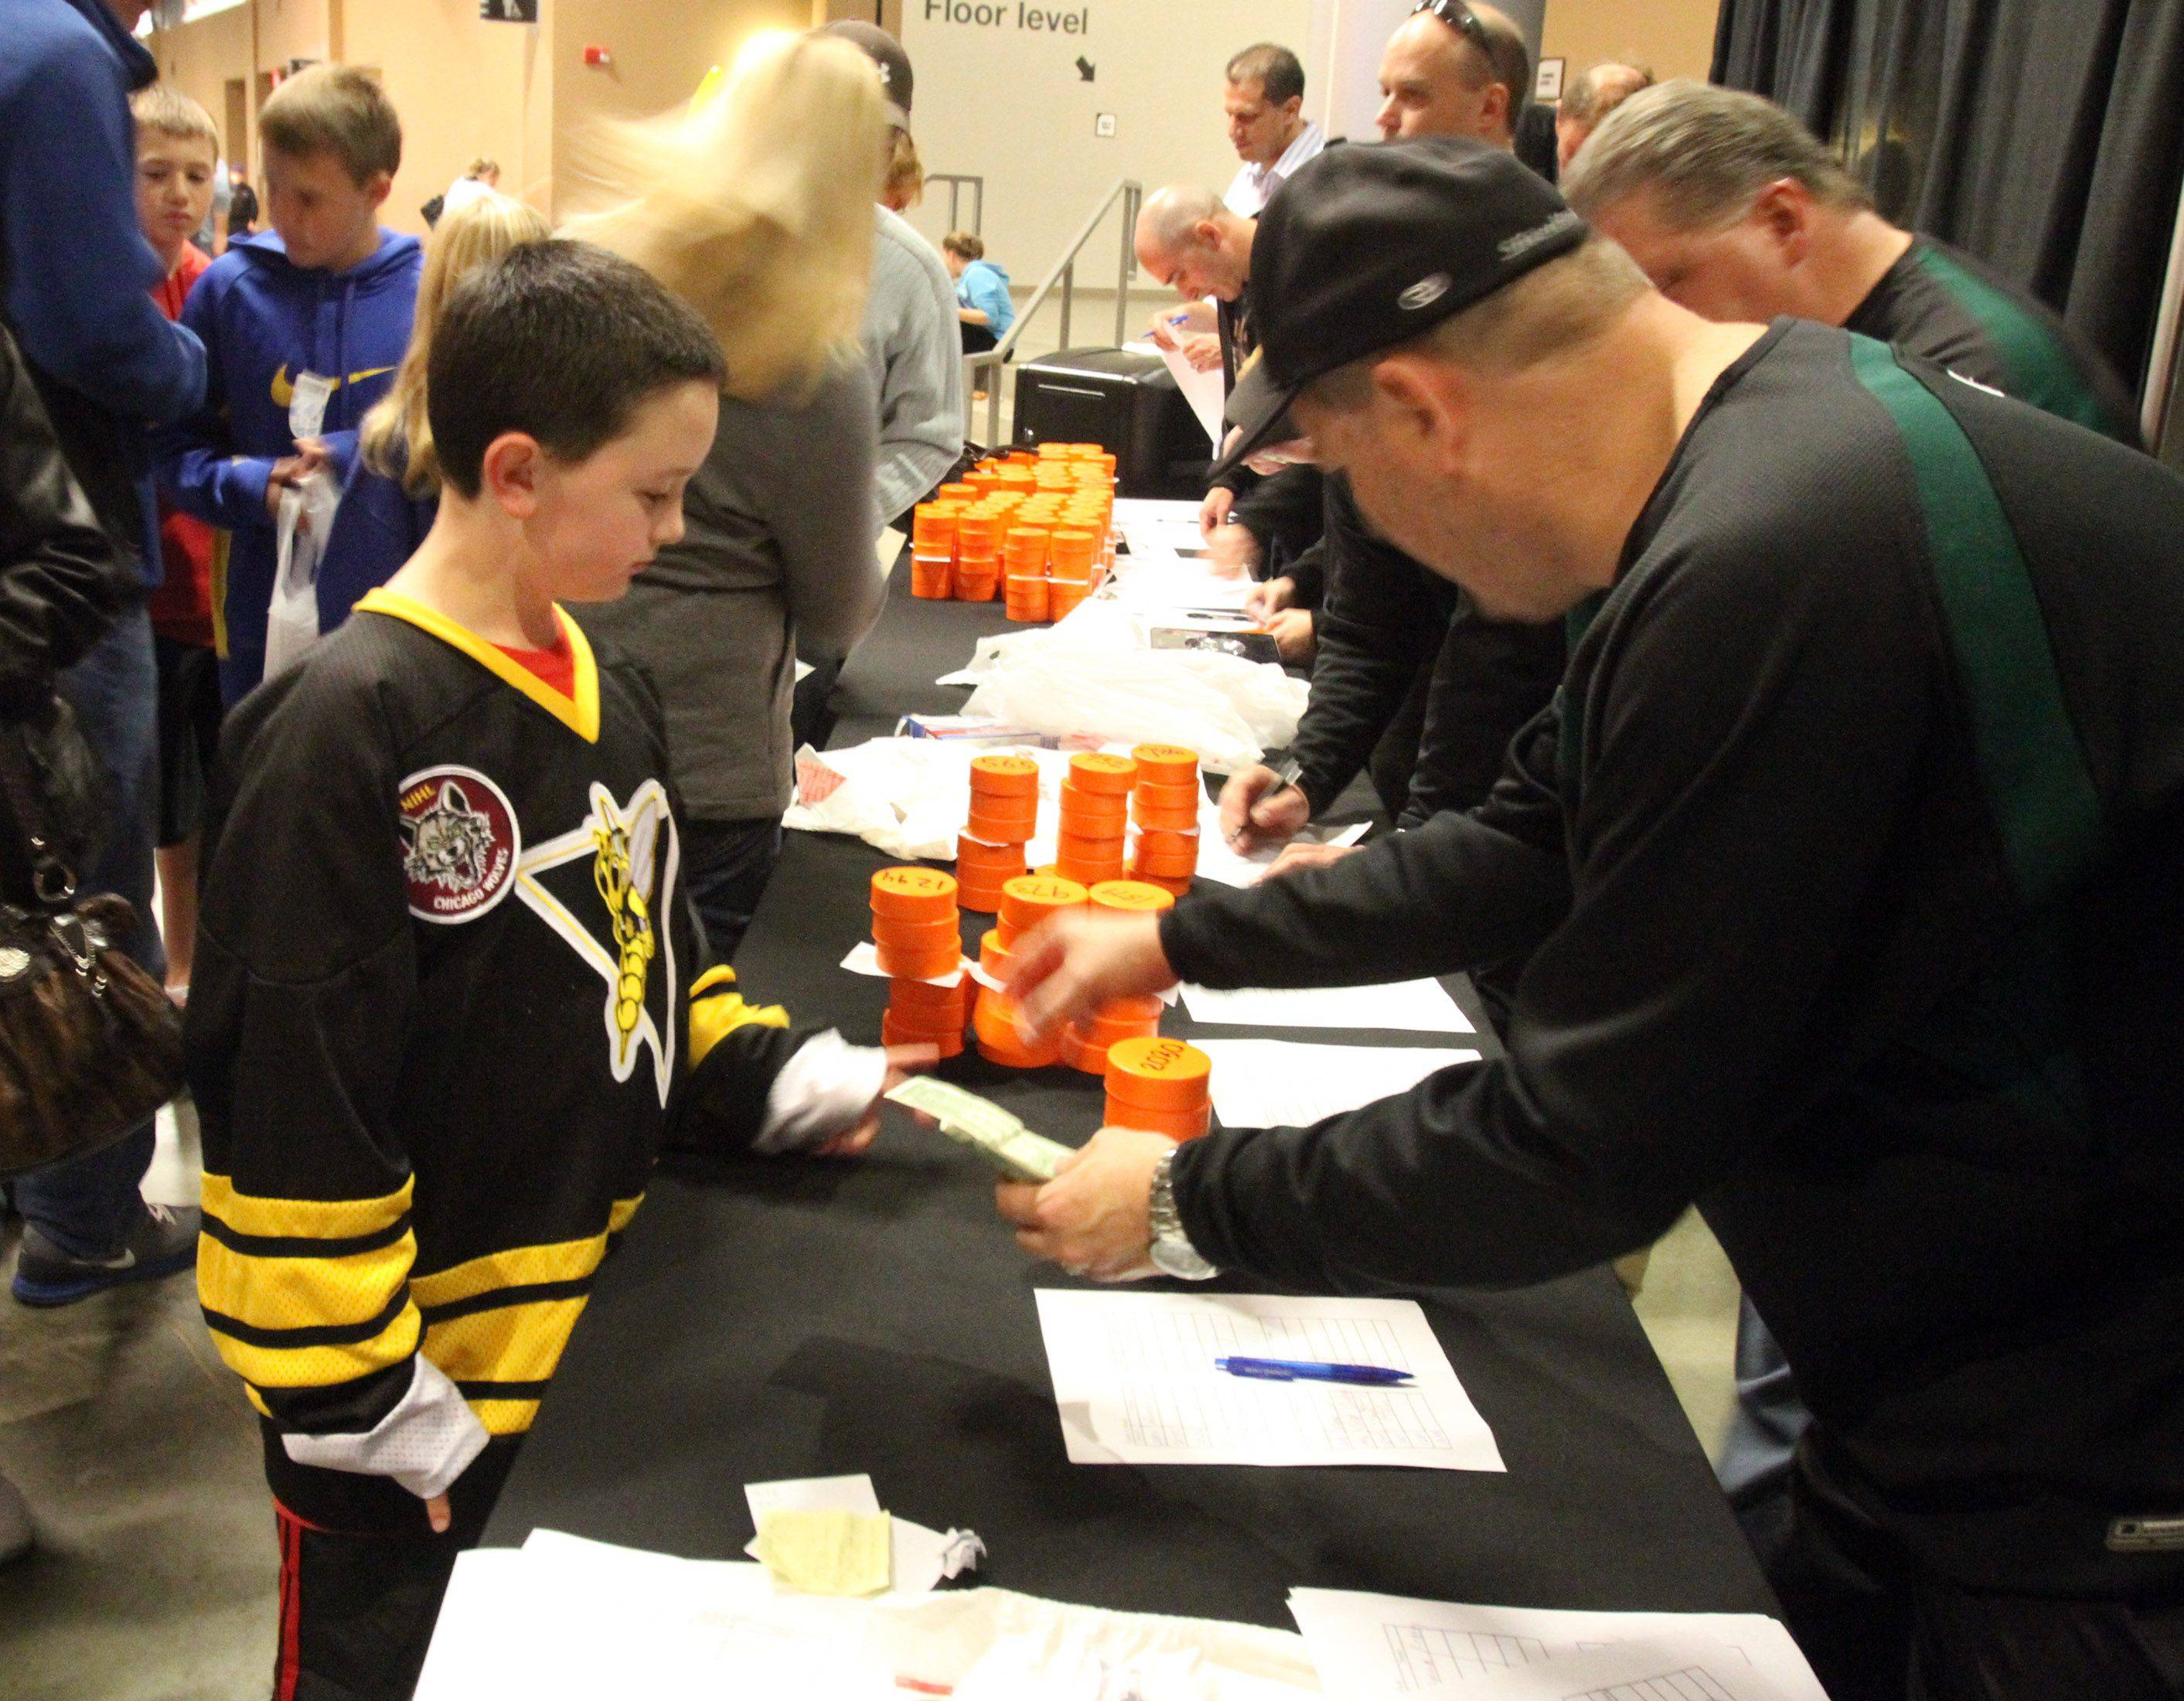 Joshua Pavelko, 8, of Crystal Lake, signs up for the chuck-a-puck before the Chicago Express home opener Hoffman Estates on Saturday, October 22nd.